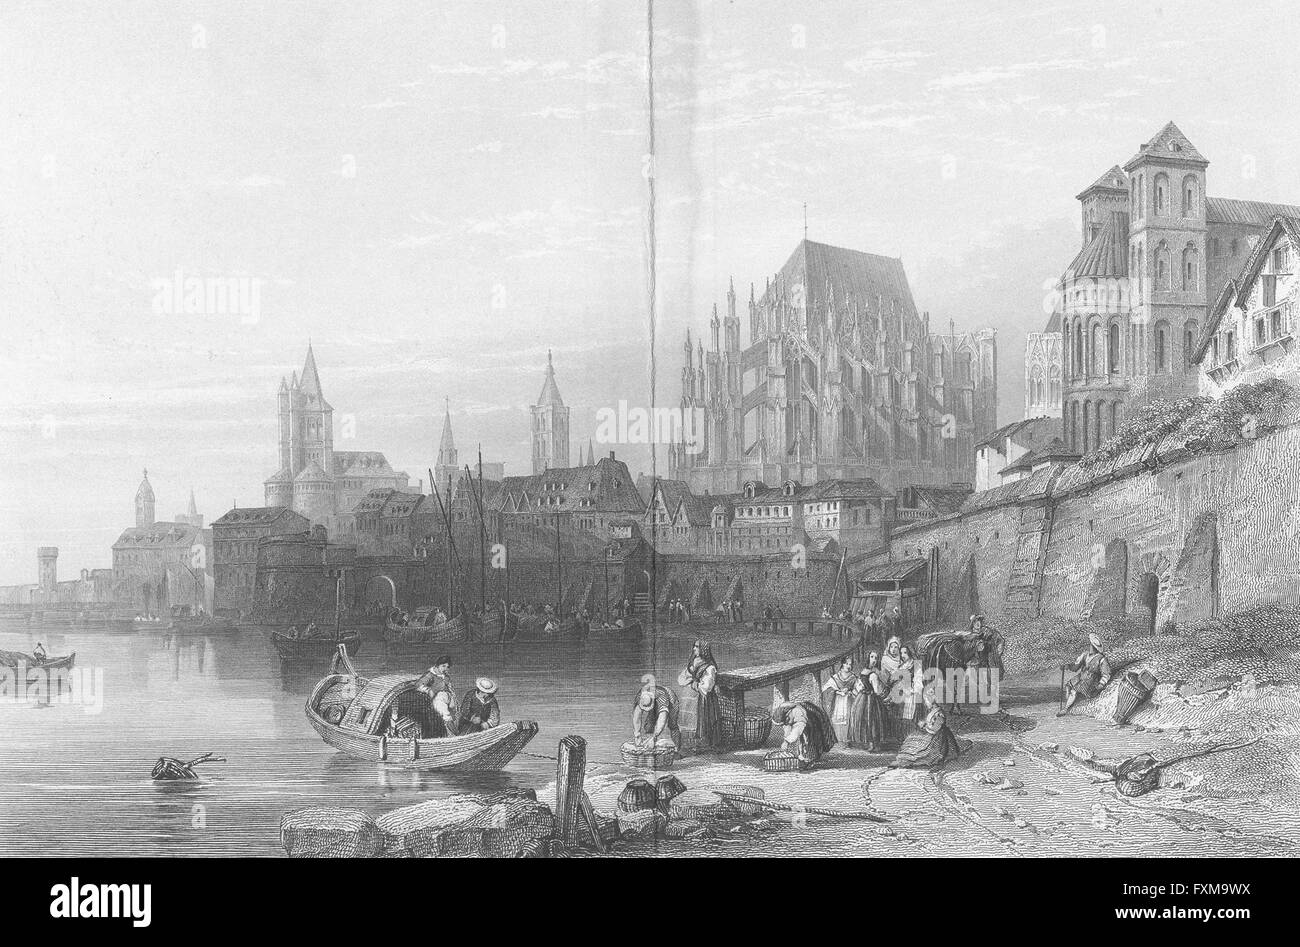 GERMANY: Cologne, Rhine: Leitch, antique print 1845 - Stock Image